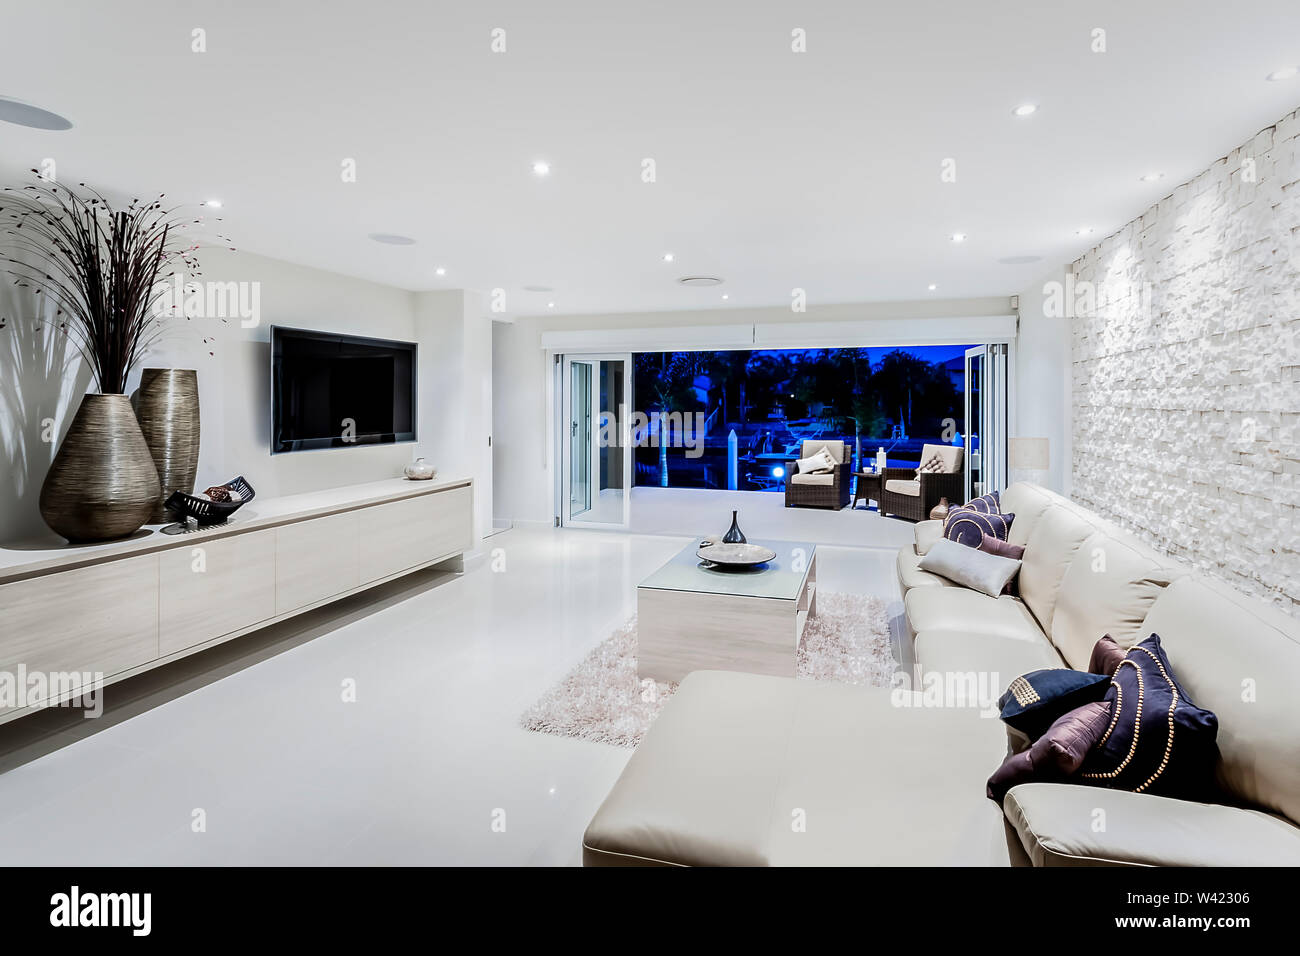 Modern Living Room At Night With Sofas And Pillows Next To ...